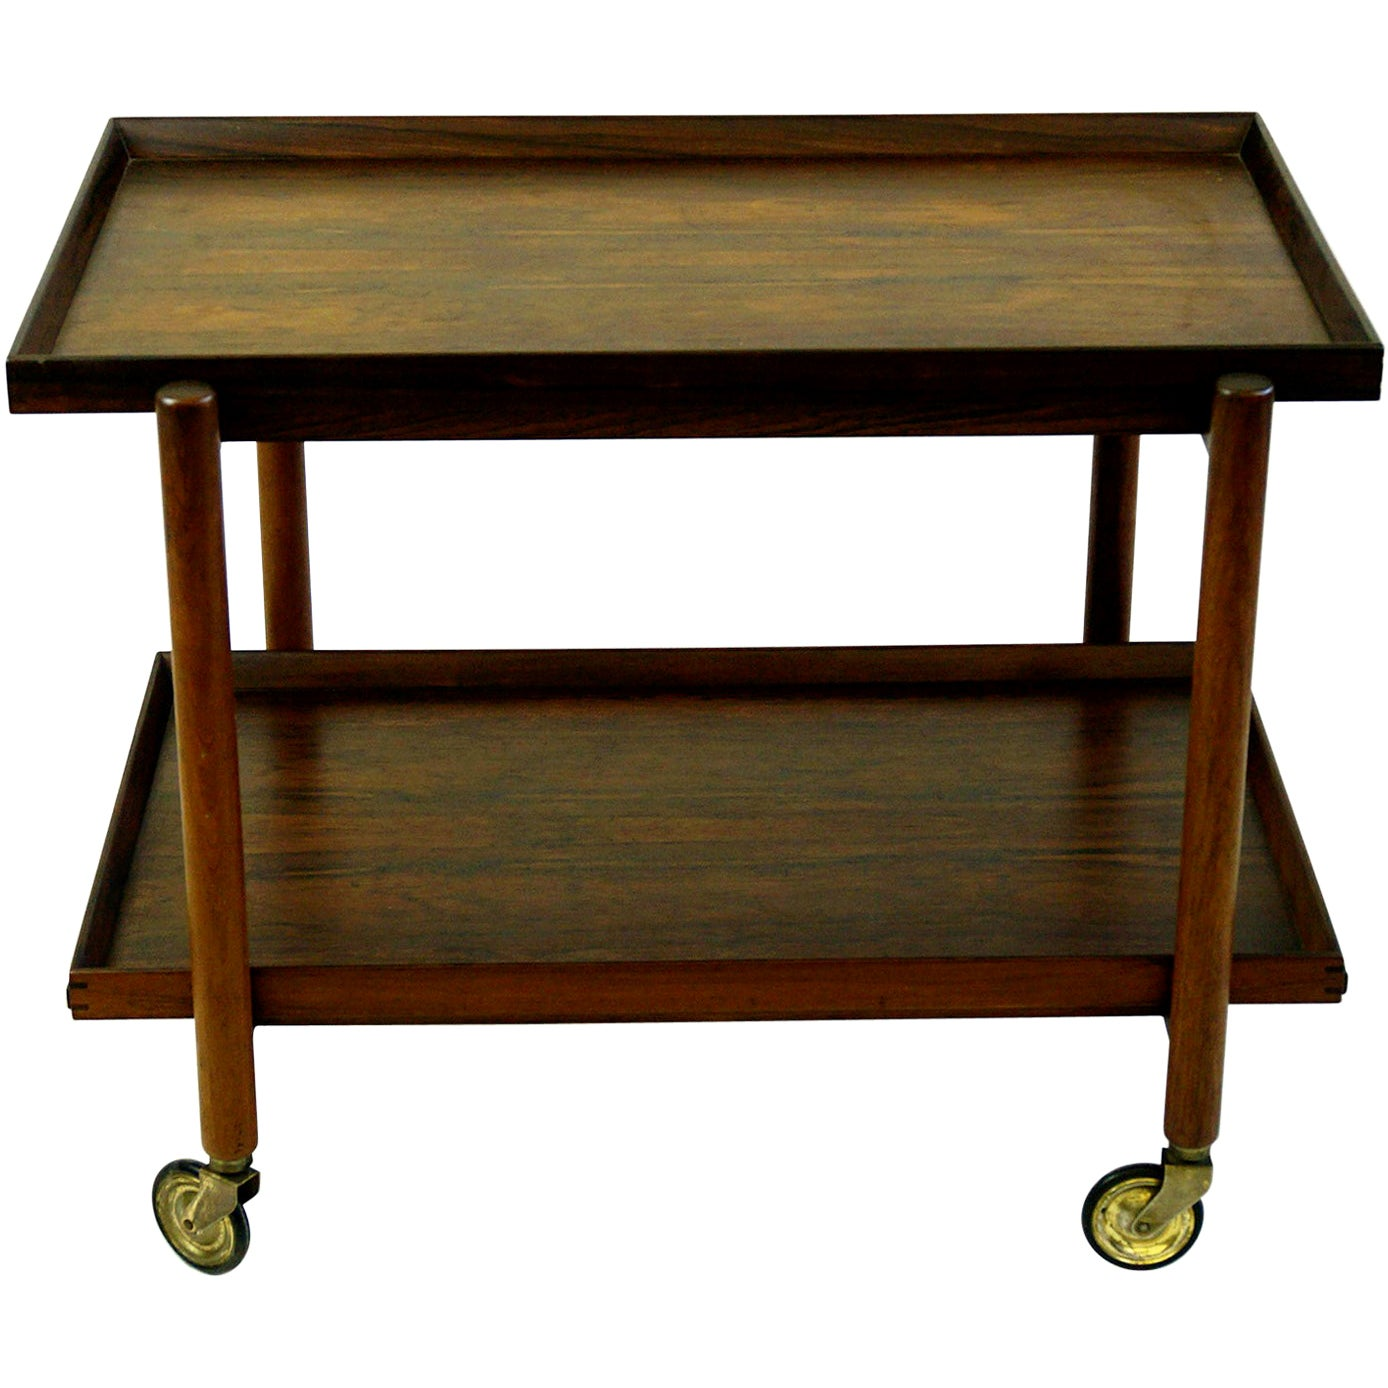 Scandinavian Modern Rosewood Serving Trolley or Bar Cart by Poul Hundevad